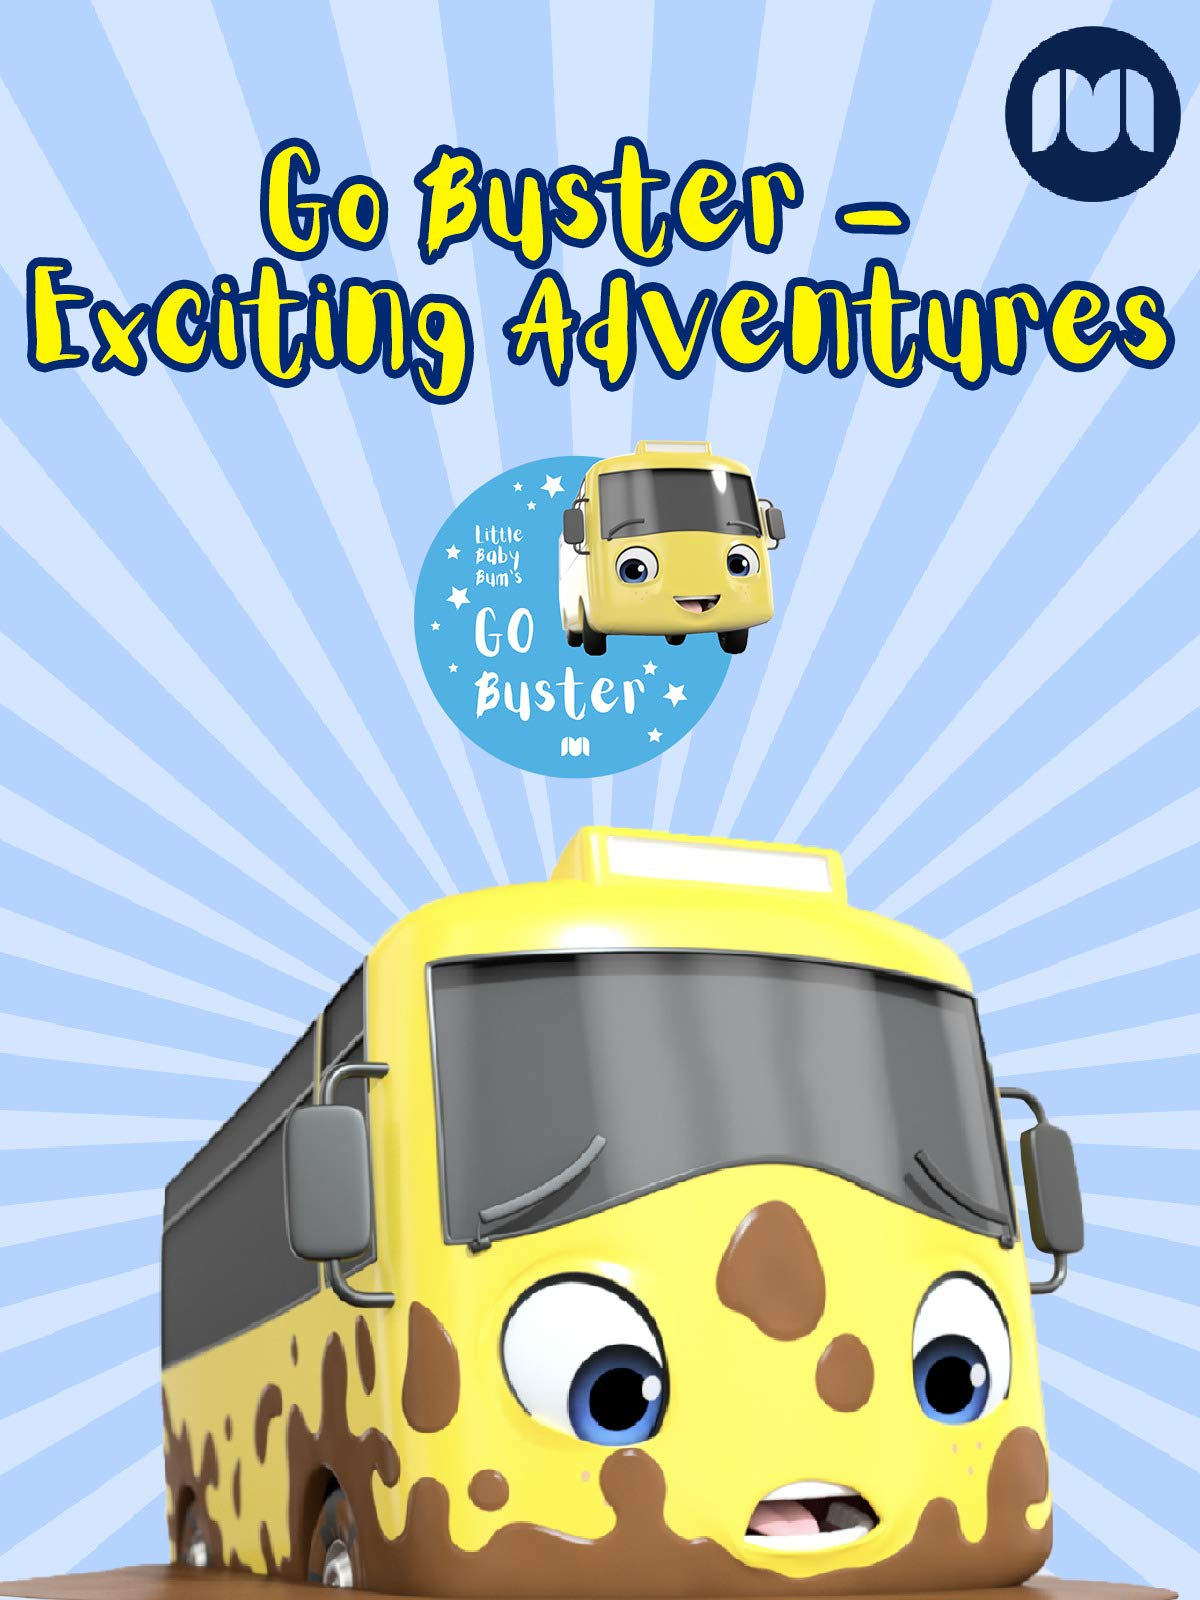 Go Buster - Exciting Adventures